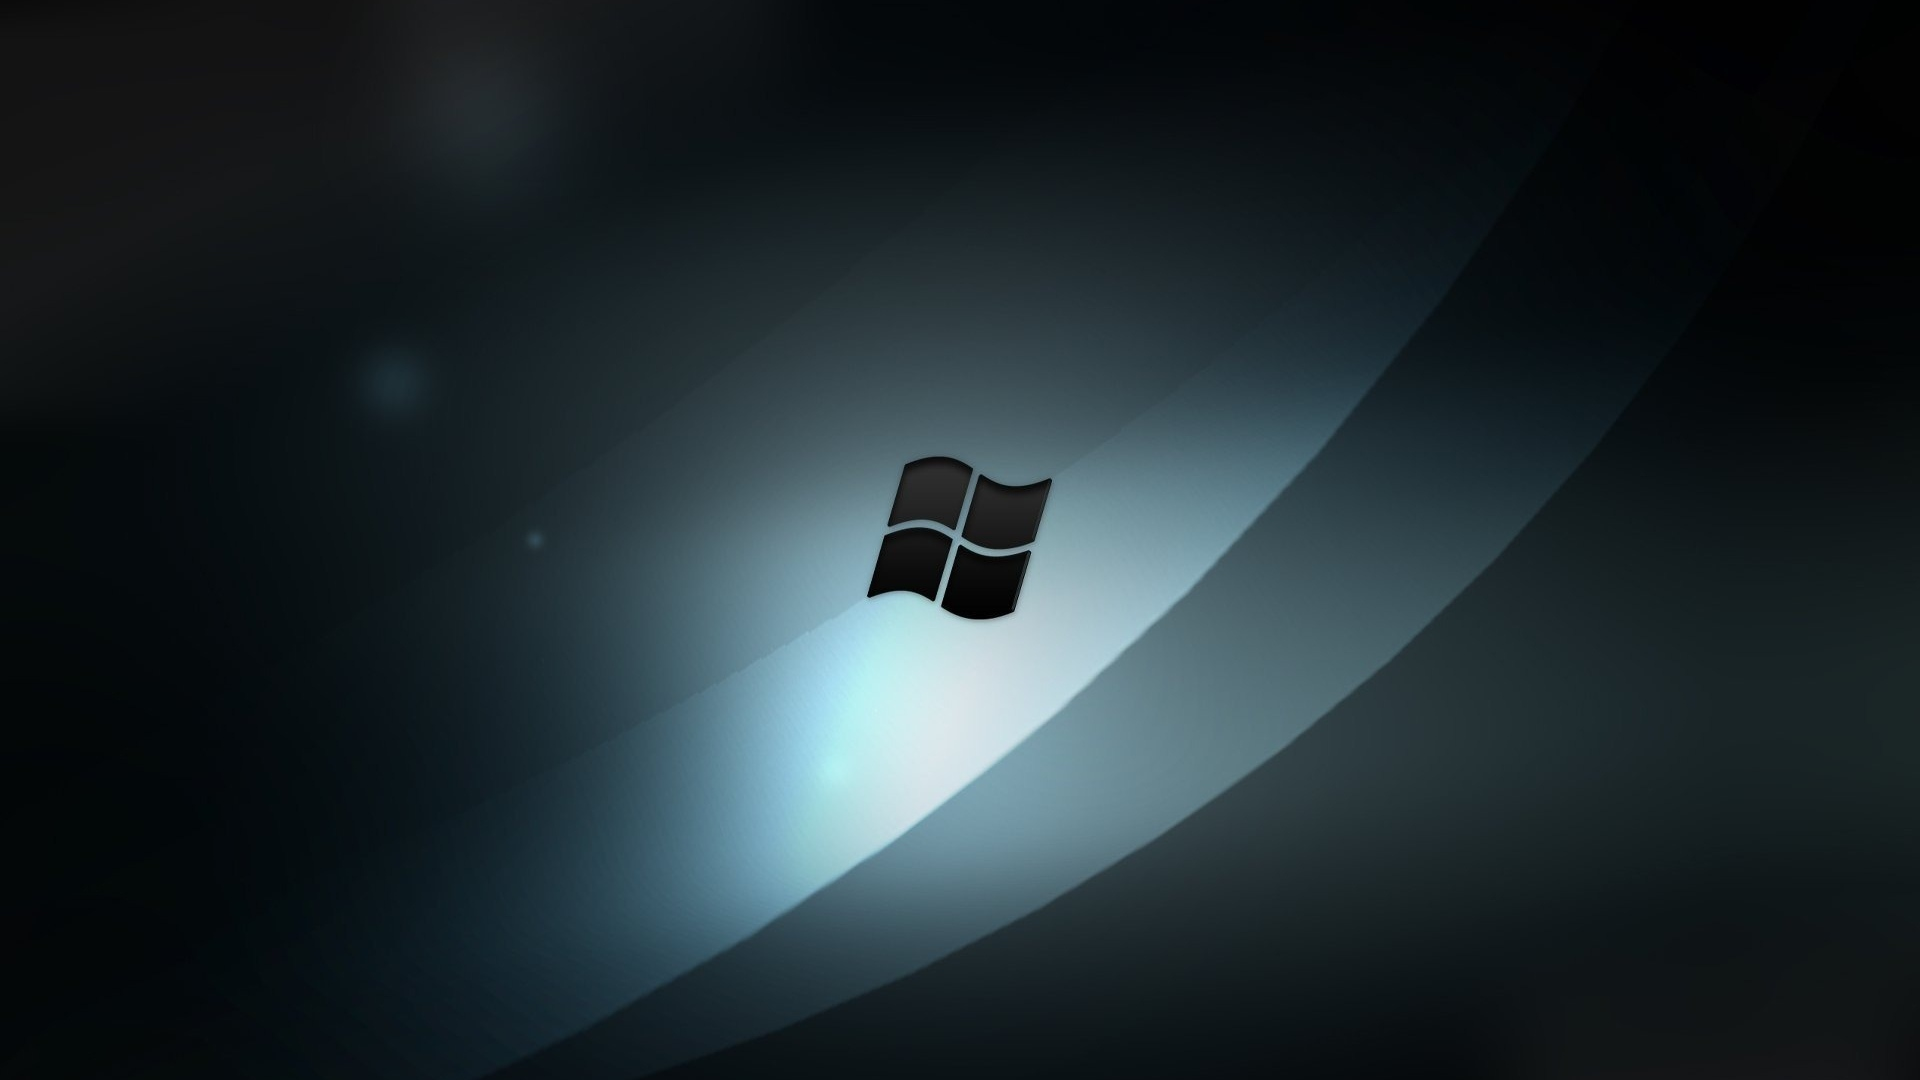 download wallpaper 1920x1080 windows 7, sign, symbol, bw full hd